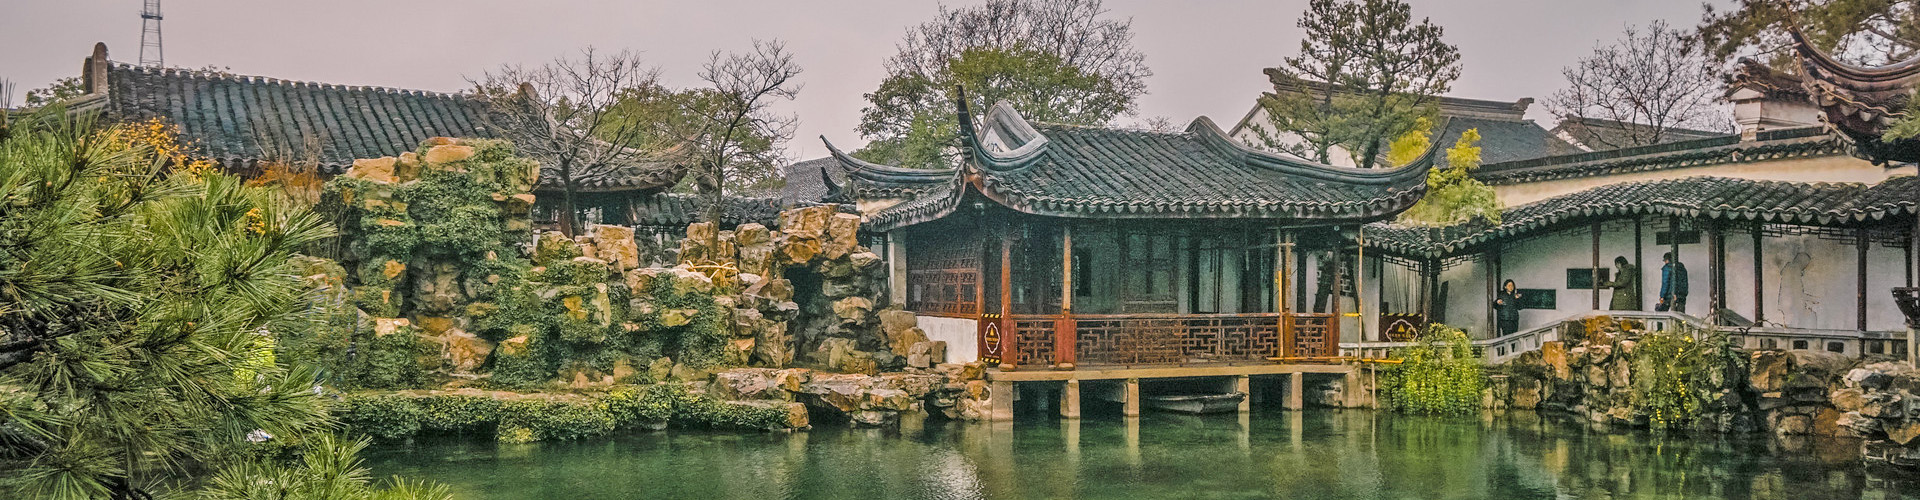 Gardens and Water Town Tour in Suzhou